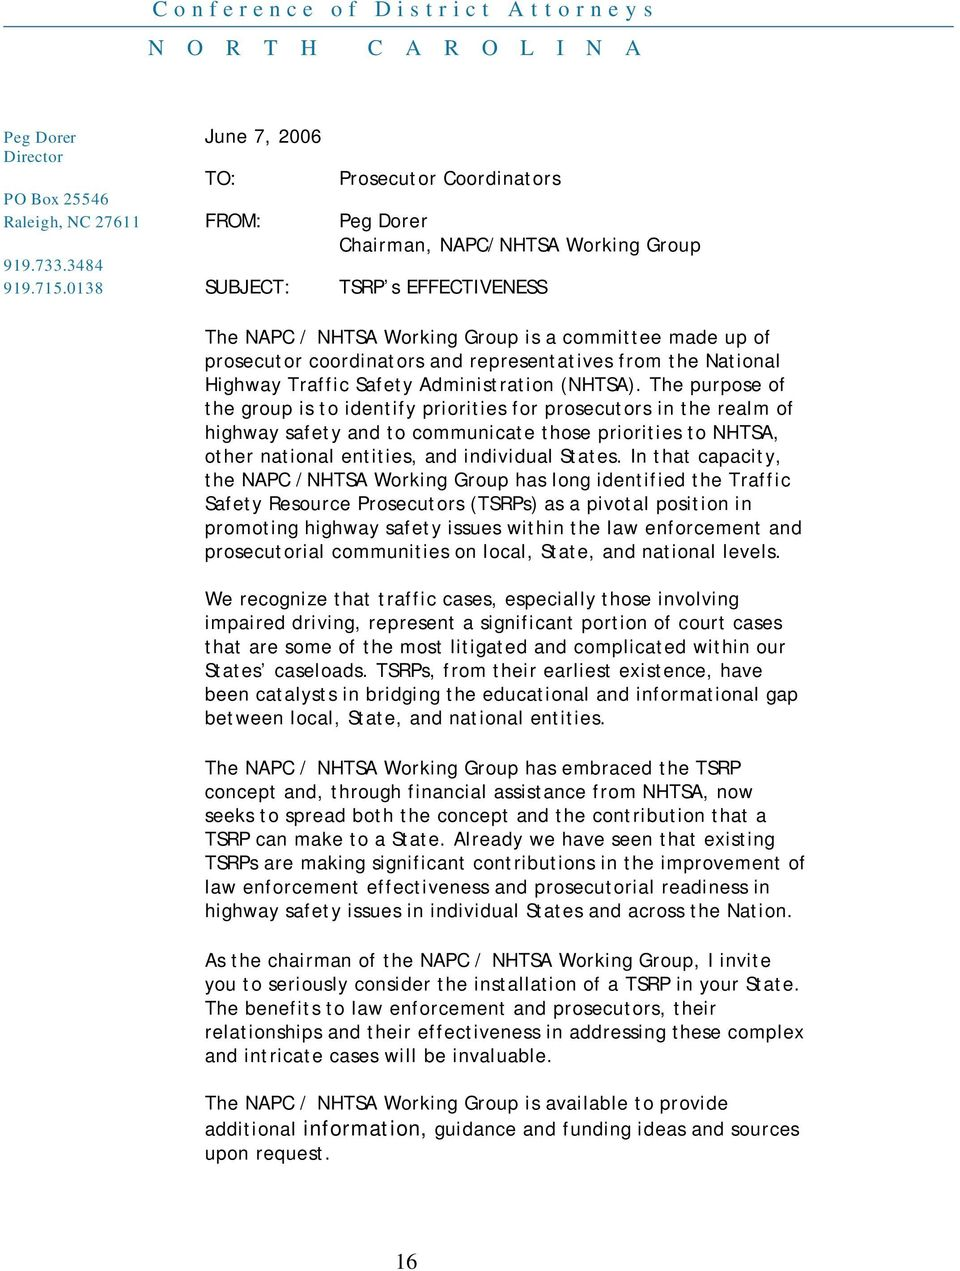 0138 SUBJECT: TSRP s EFFECTIVENESS The NAPC / NHTSA Working Group is a committee made up of prosecutor coordinators and representatives from the National Highway Traffic Safety Administration (NHTSA).